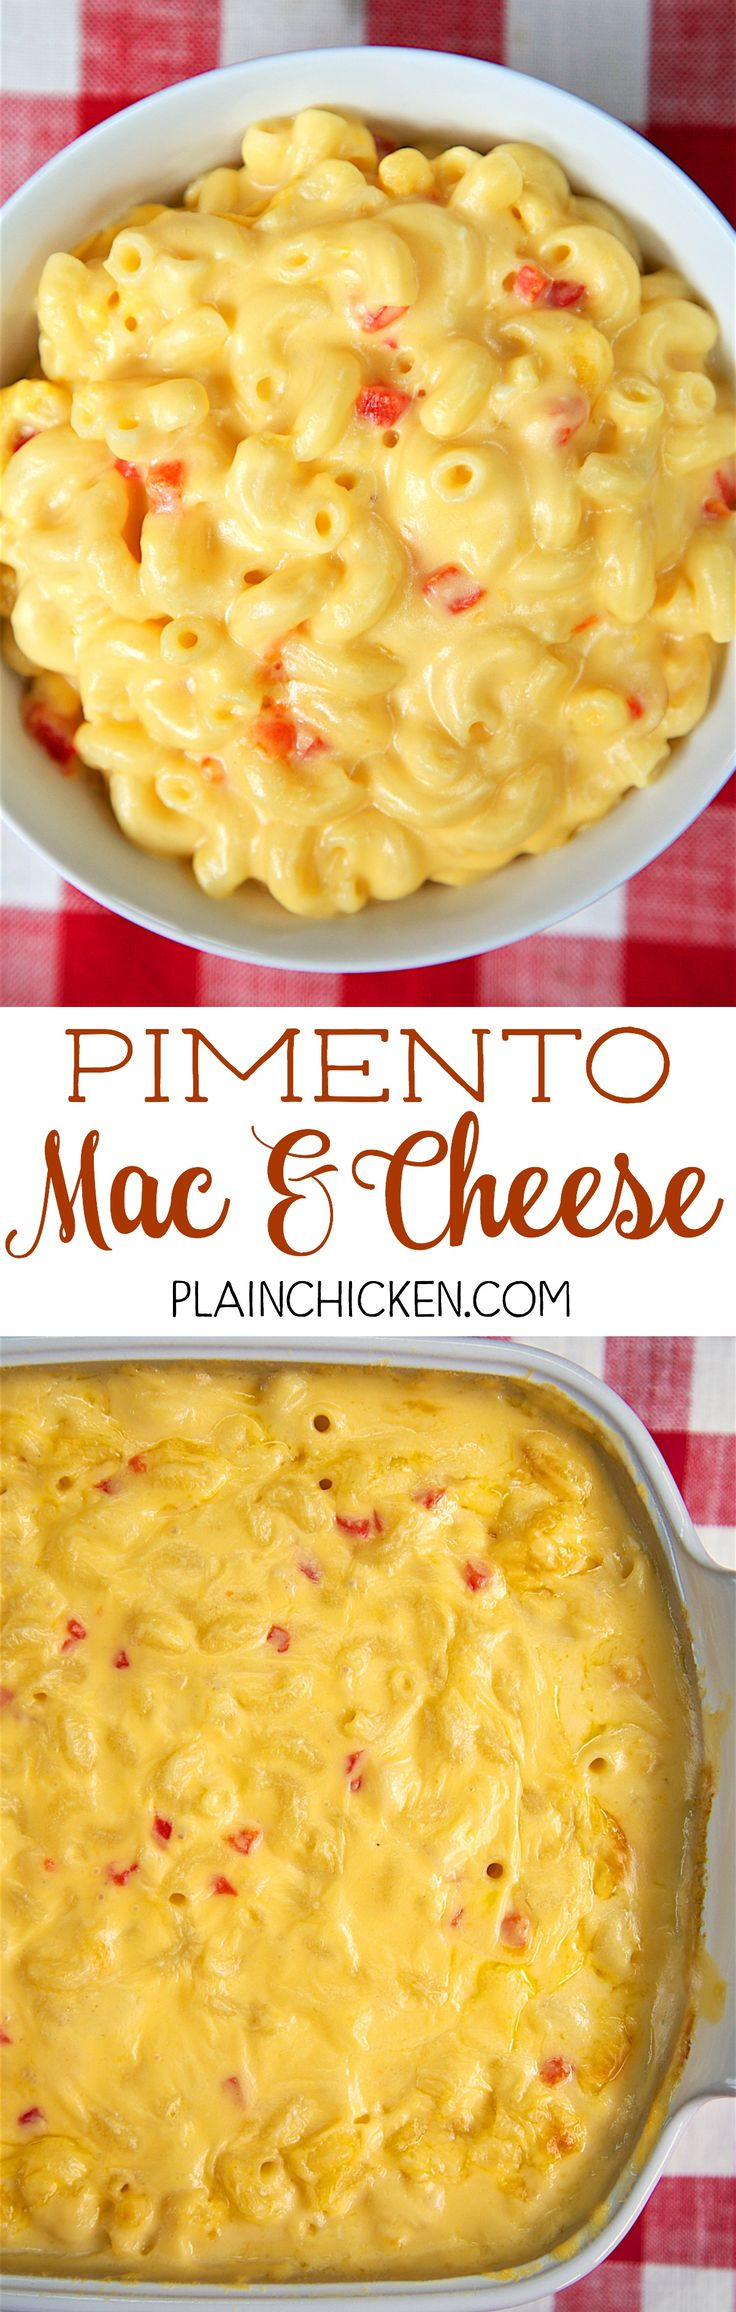 Pimento Mac & Cheese - copycat recipe from Hattie B's Hot Chicken in Nashville. This stuff is SO good! Super creamy and delicious. Tastes just like the original! Great for a cookout!